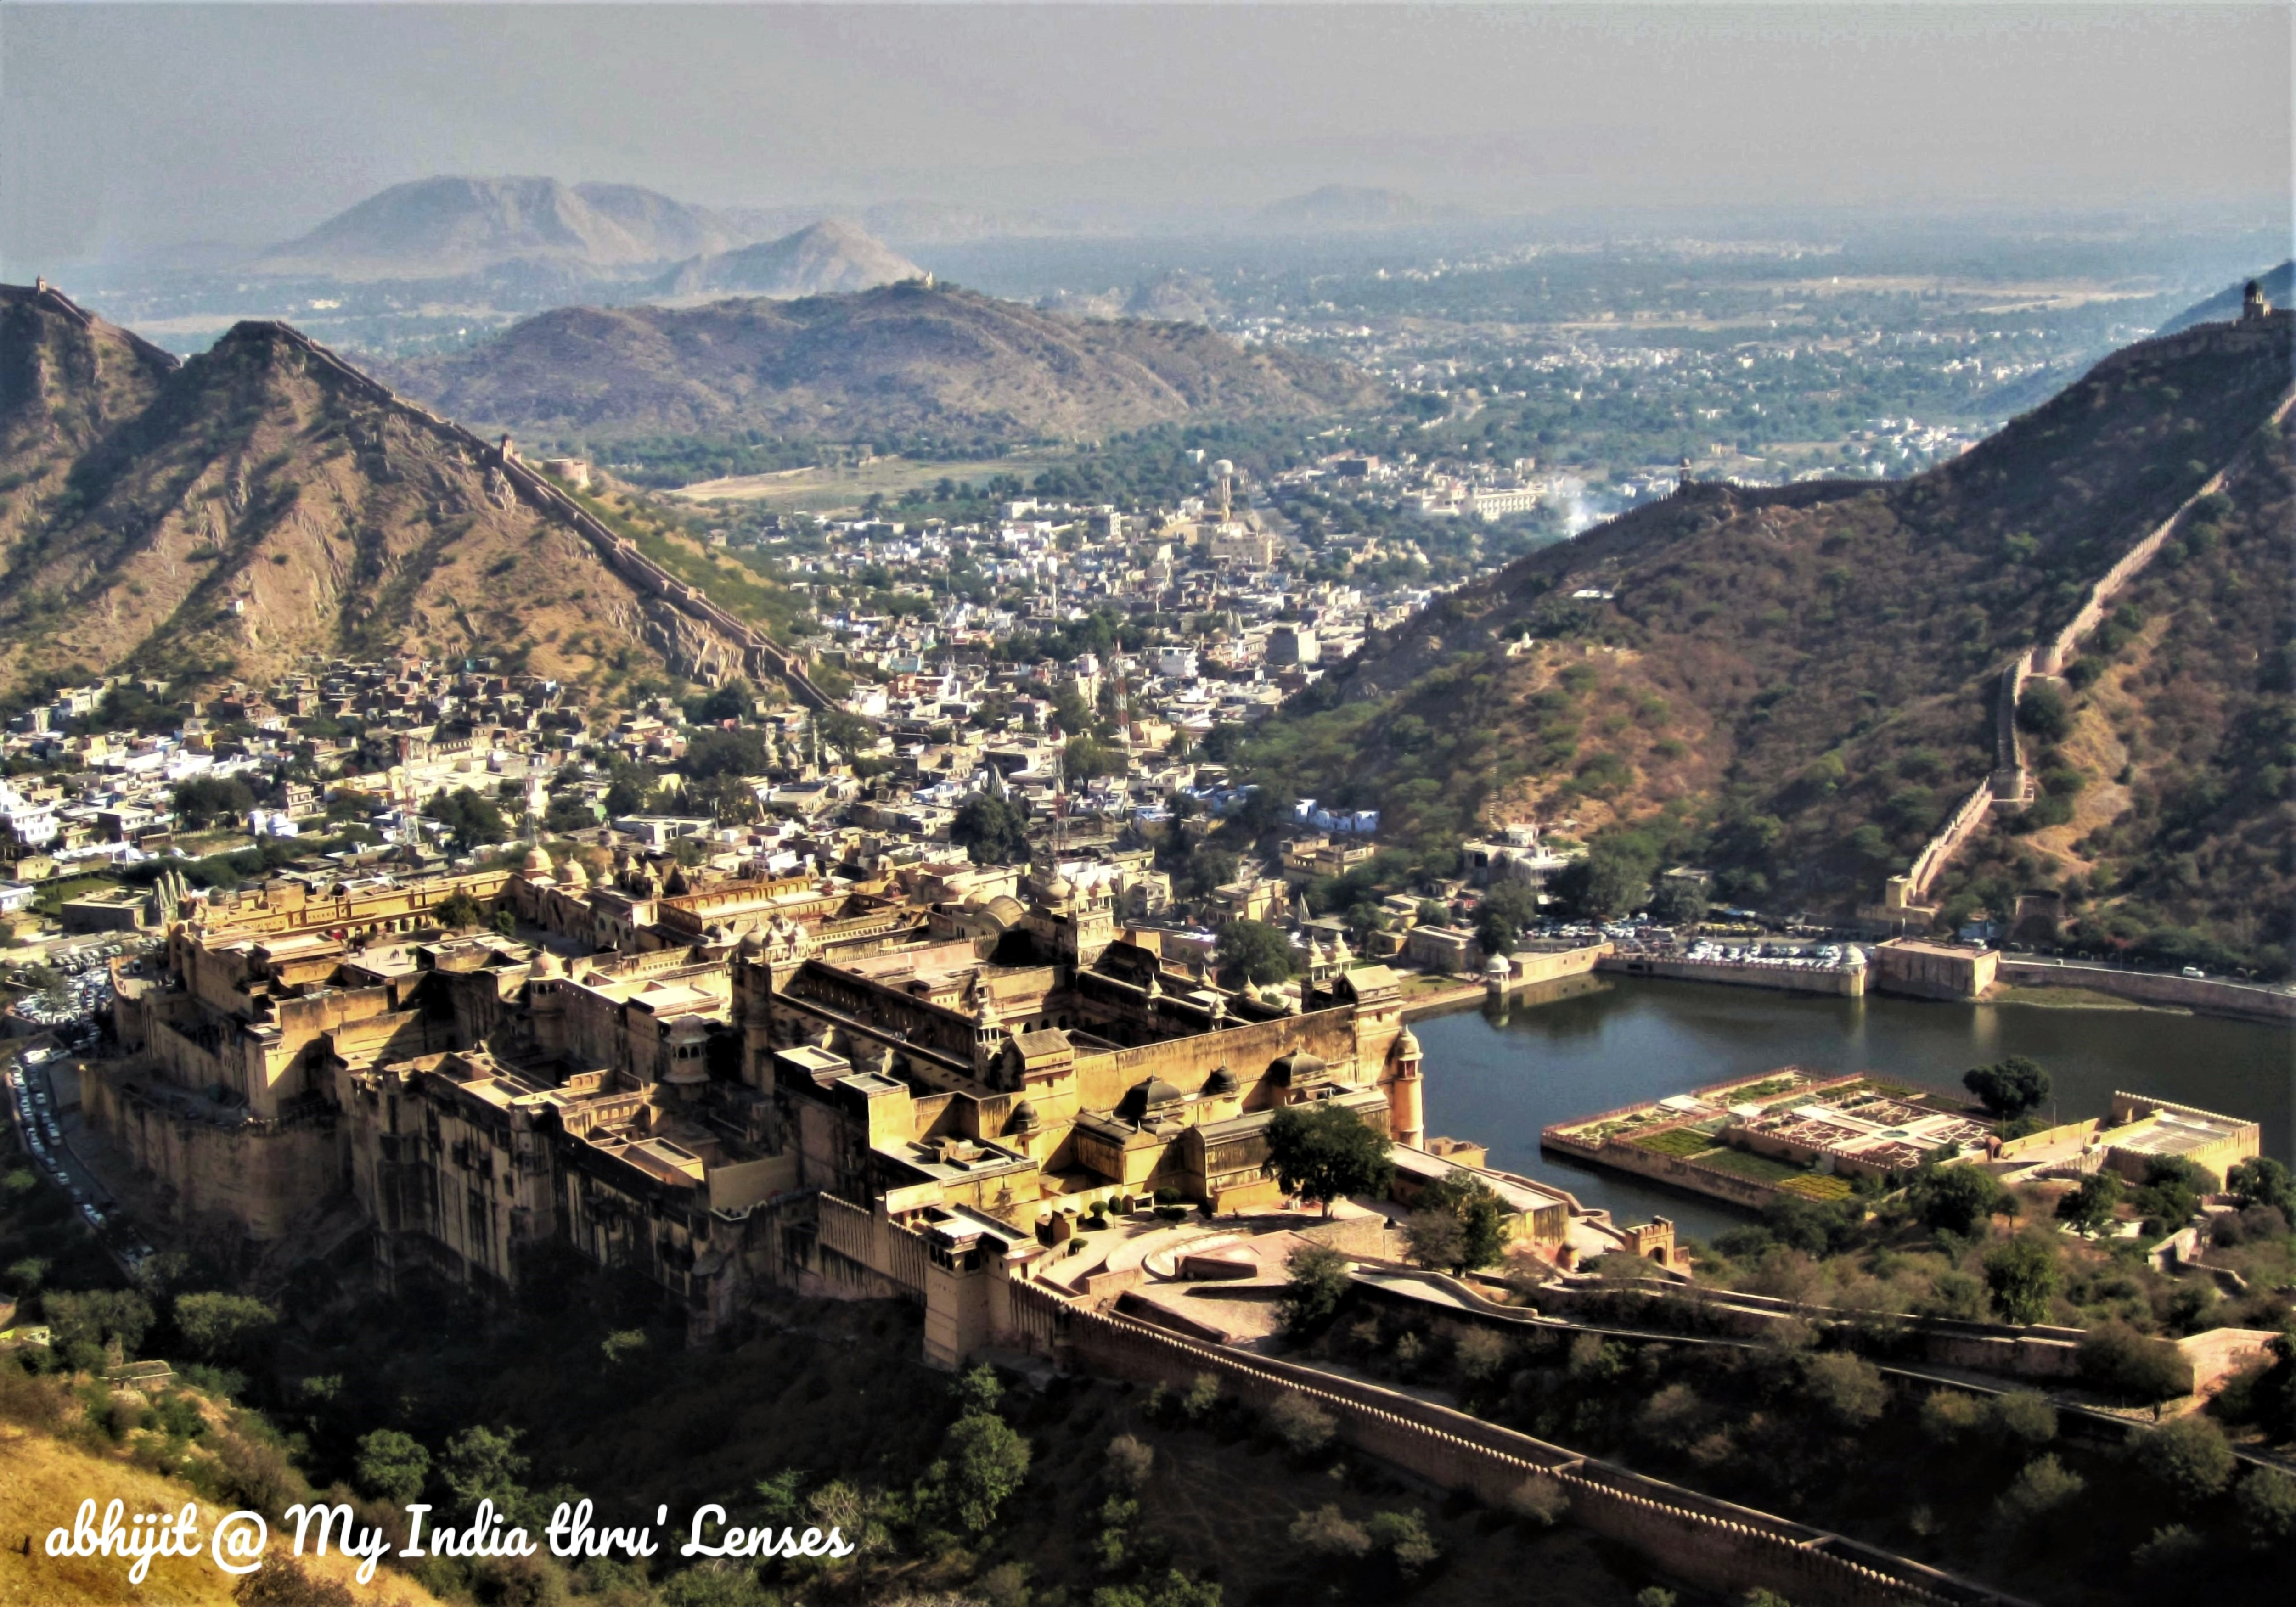 View of Amber Fort & Maota Lake from the top of Jaigarh Fort